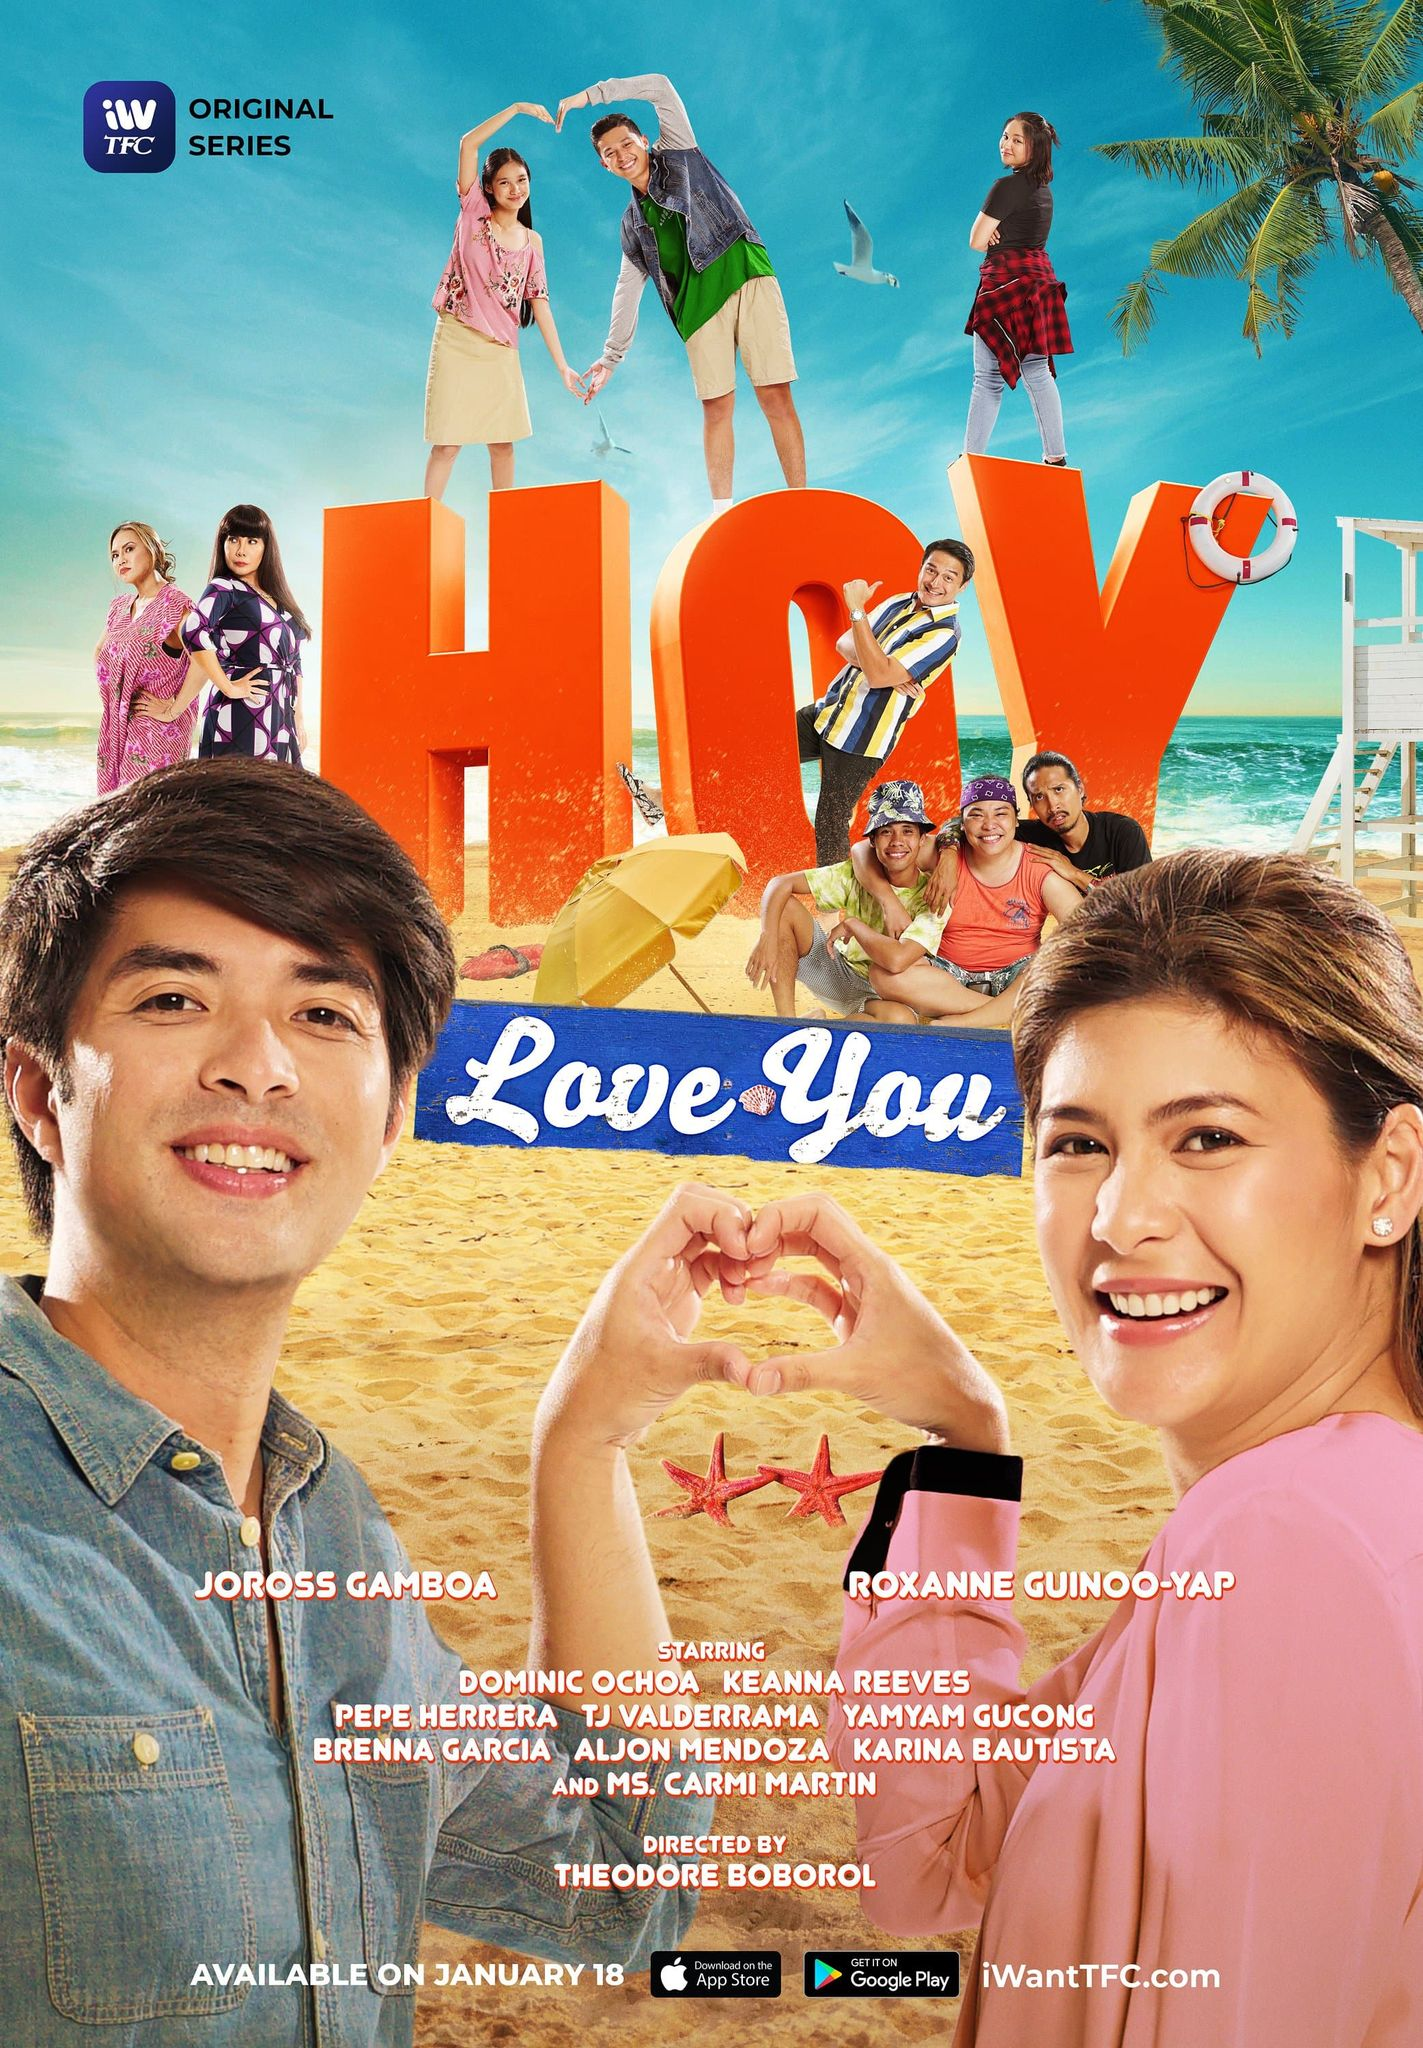 _Hoy, Love You!_ starring JoRox to stream for free on iWantTFC